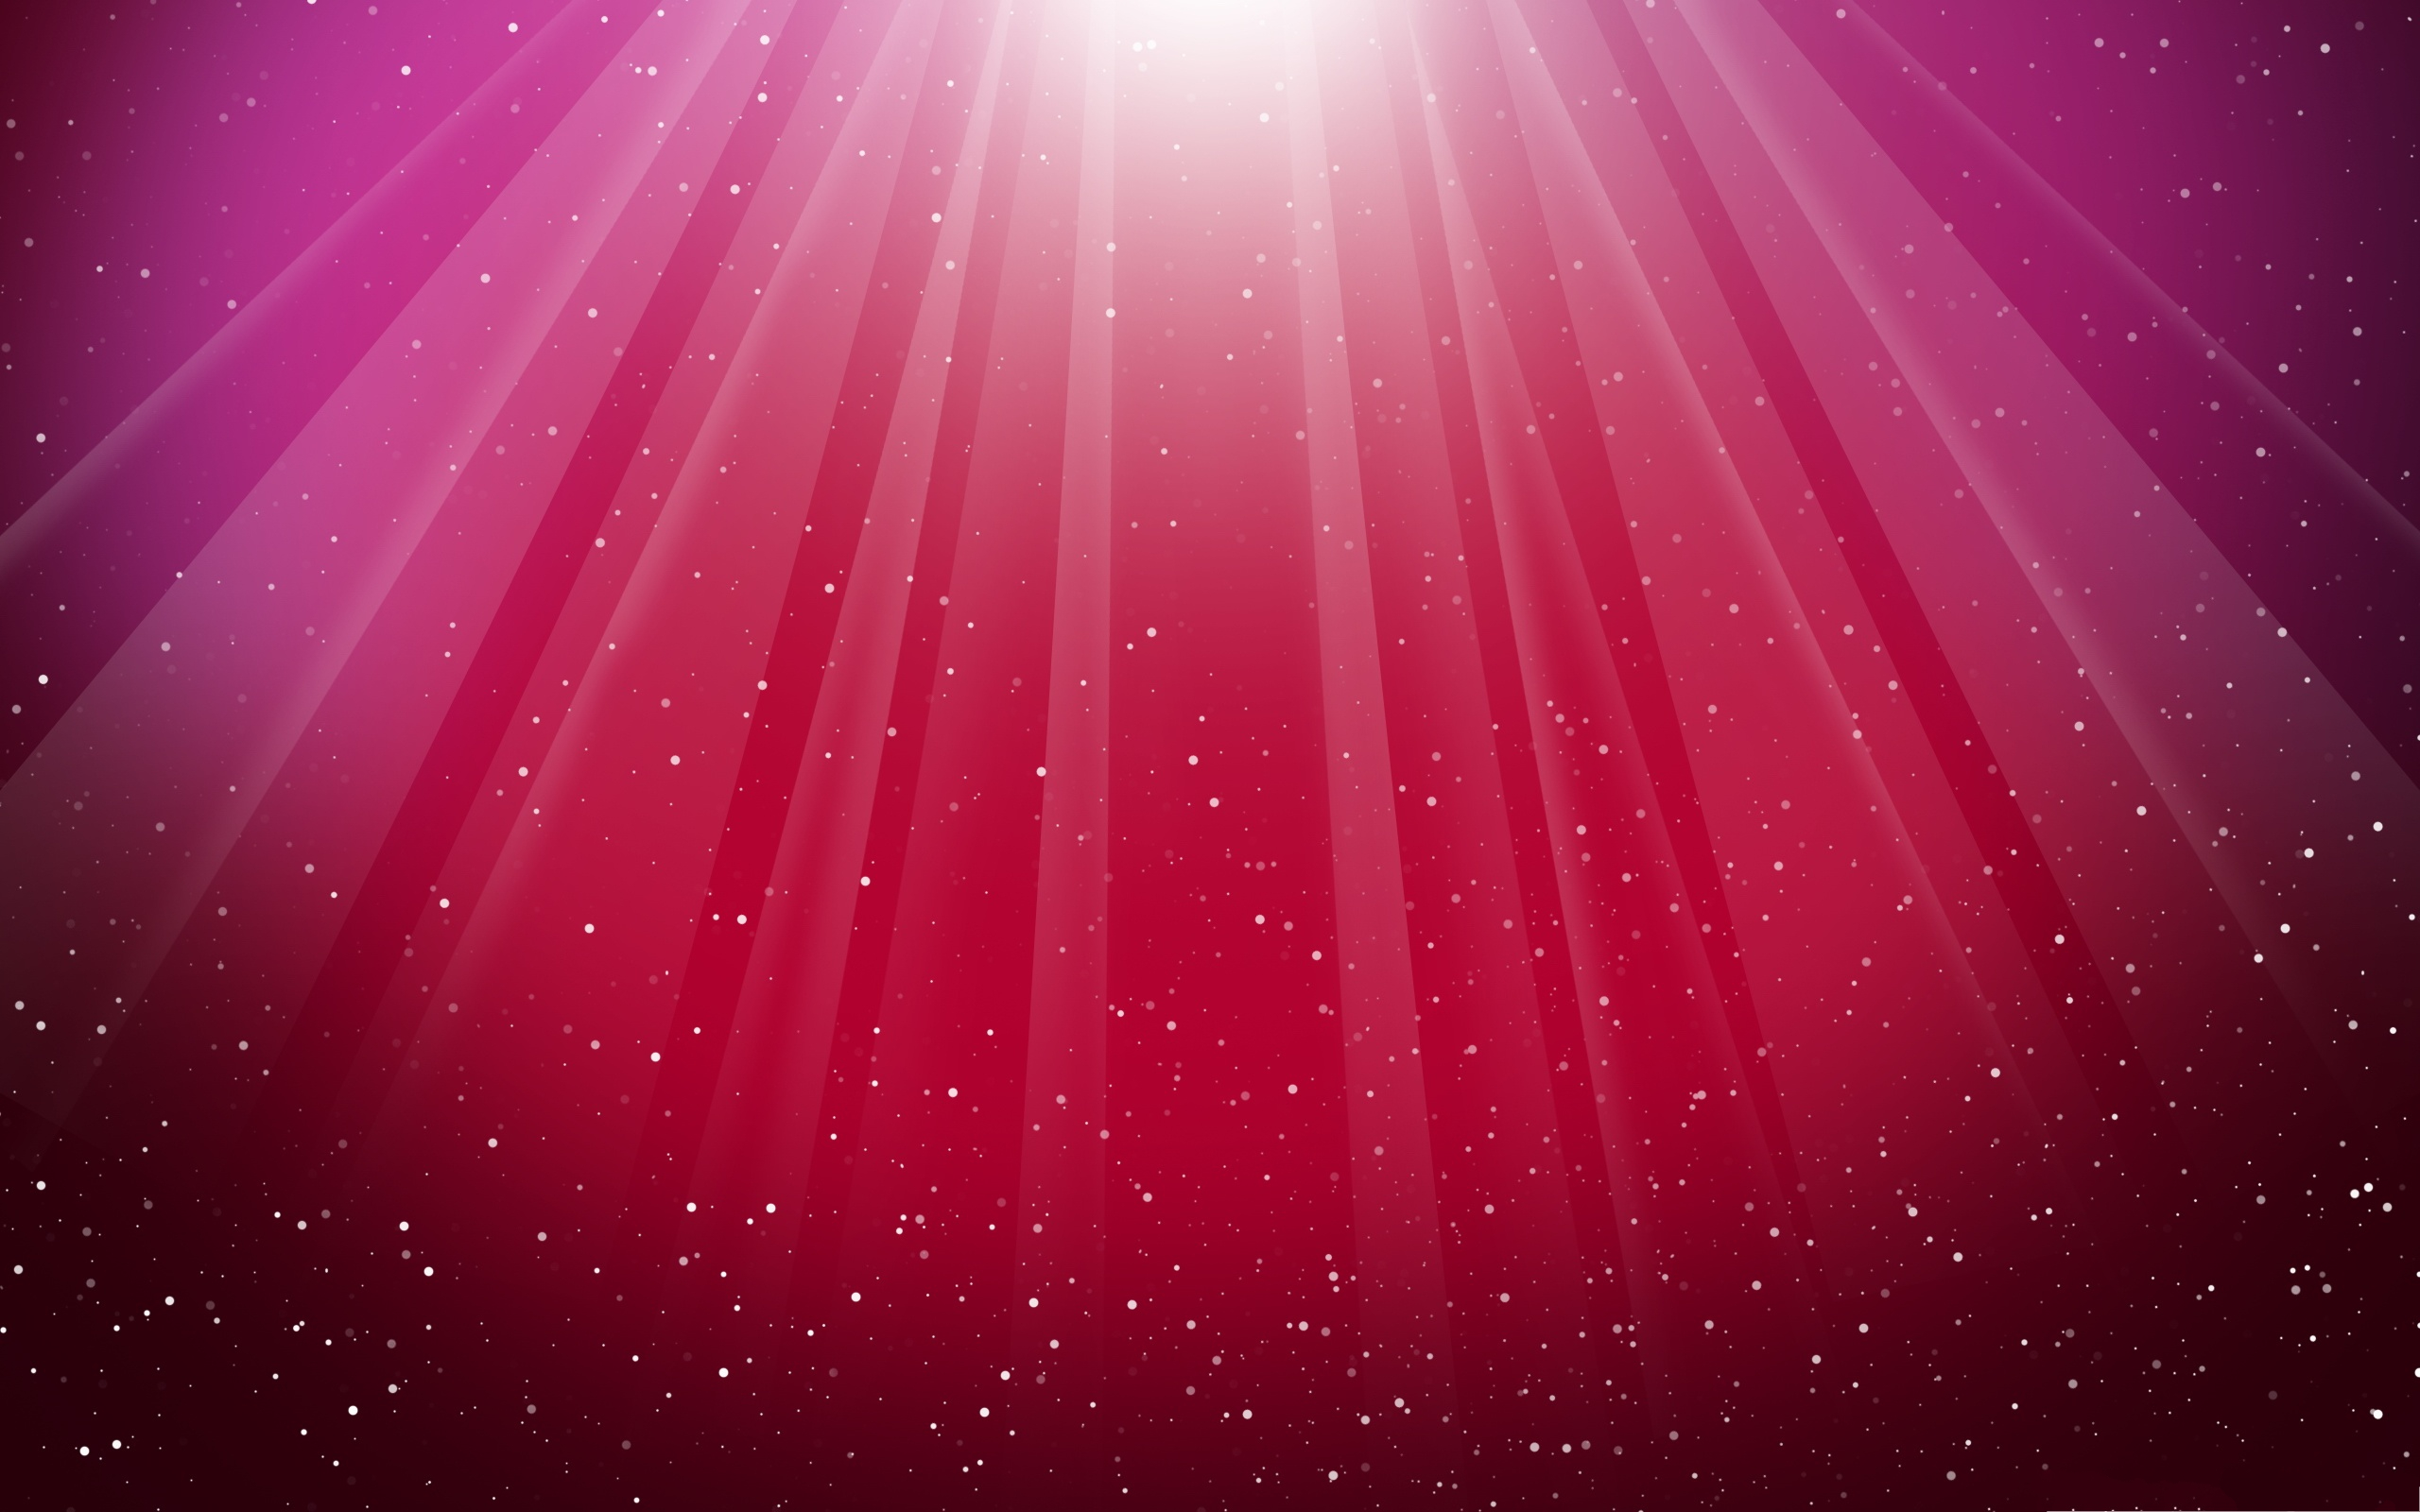 Love Wallpapers 2560x1600 : High Quality Wide Wallpaper - Aurora Burst Red, Sweet and Romantic Background 2560X1600 free ...